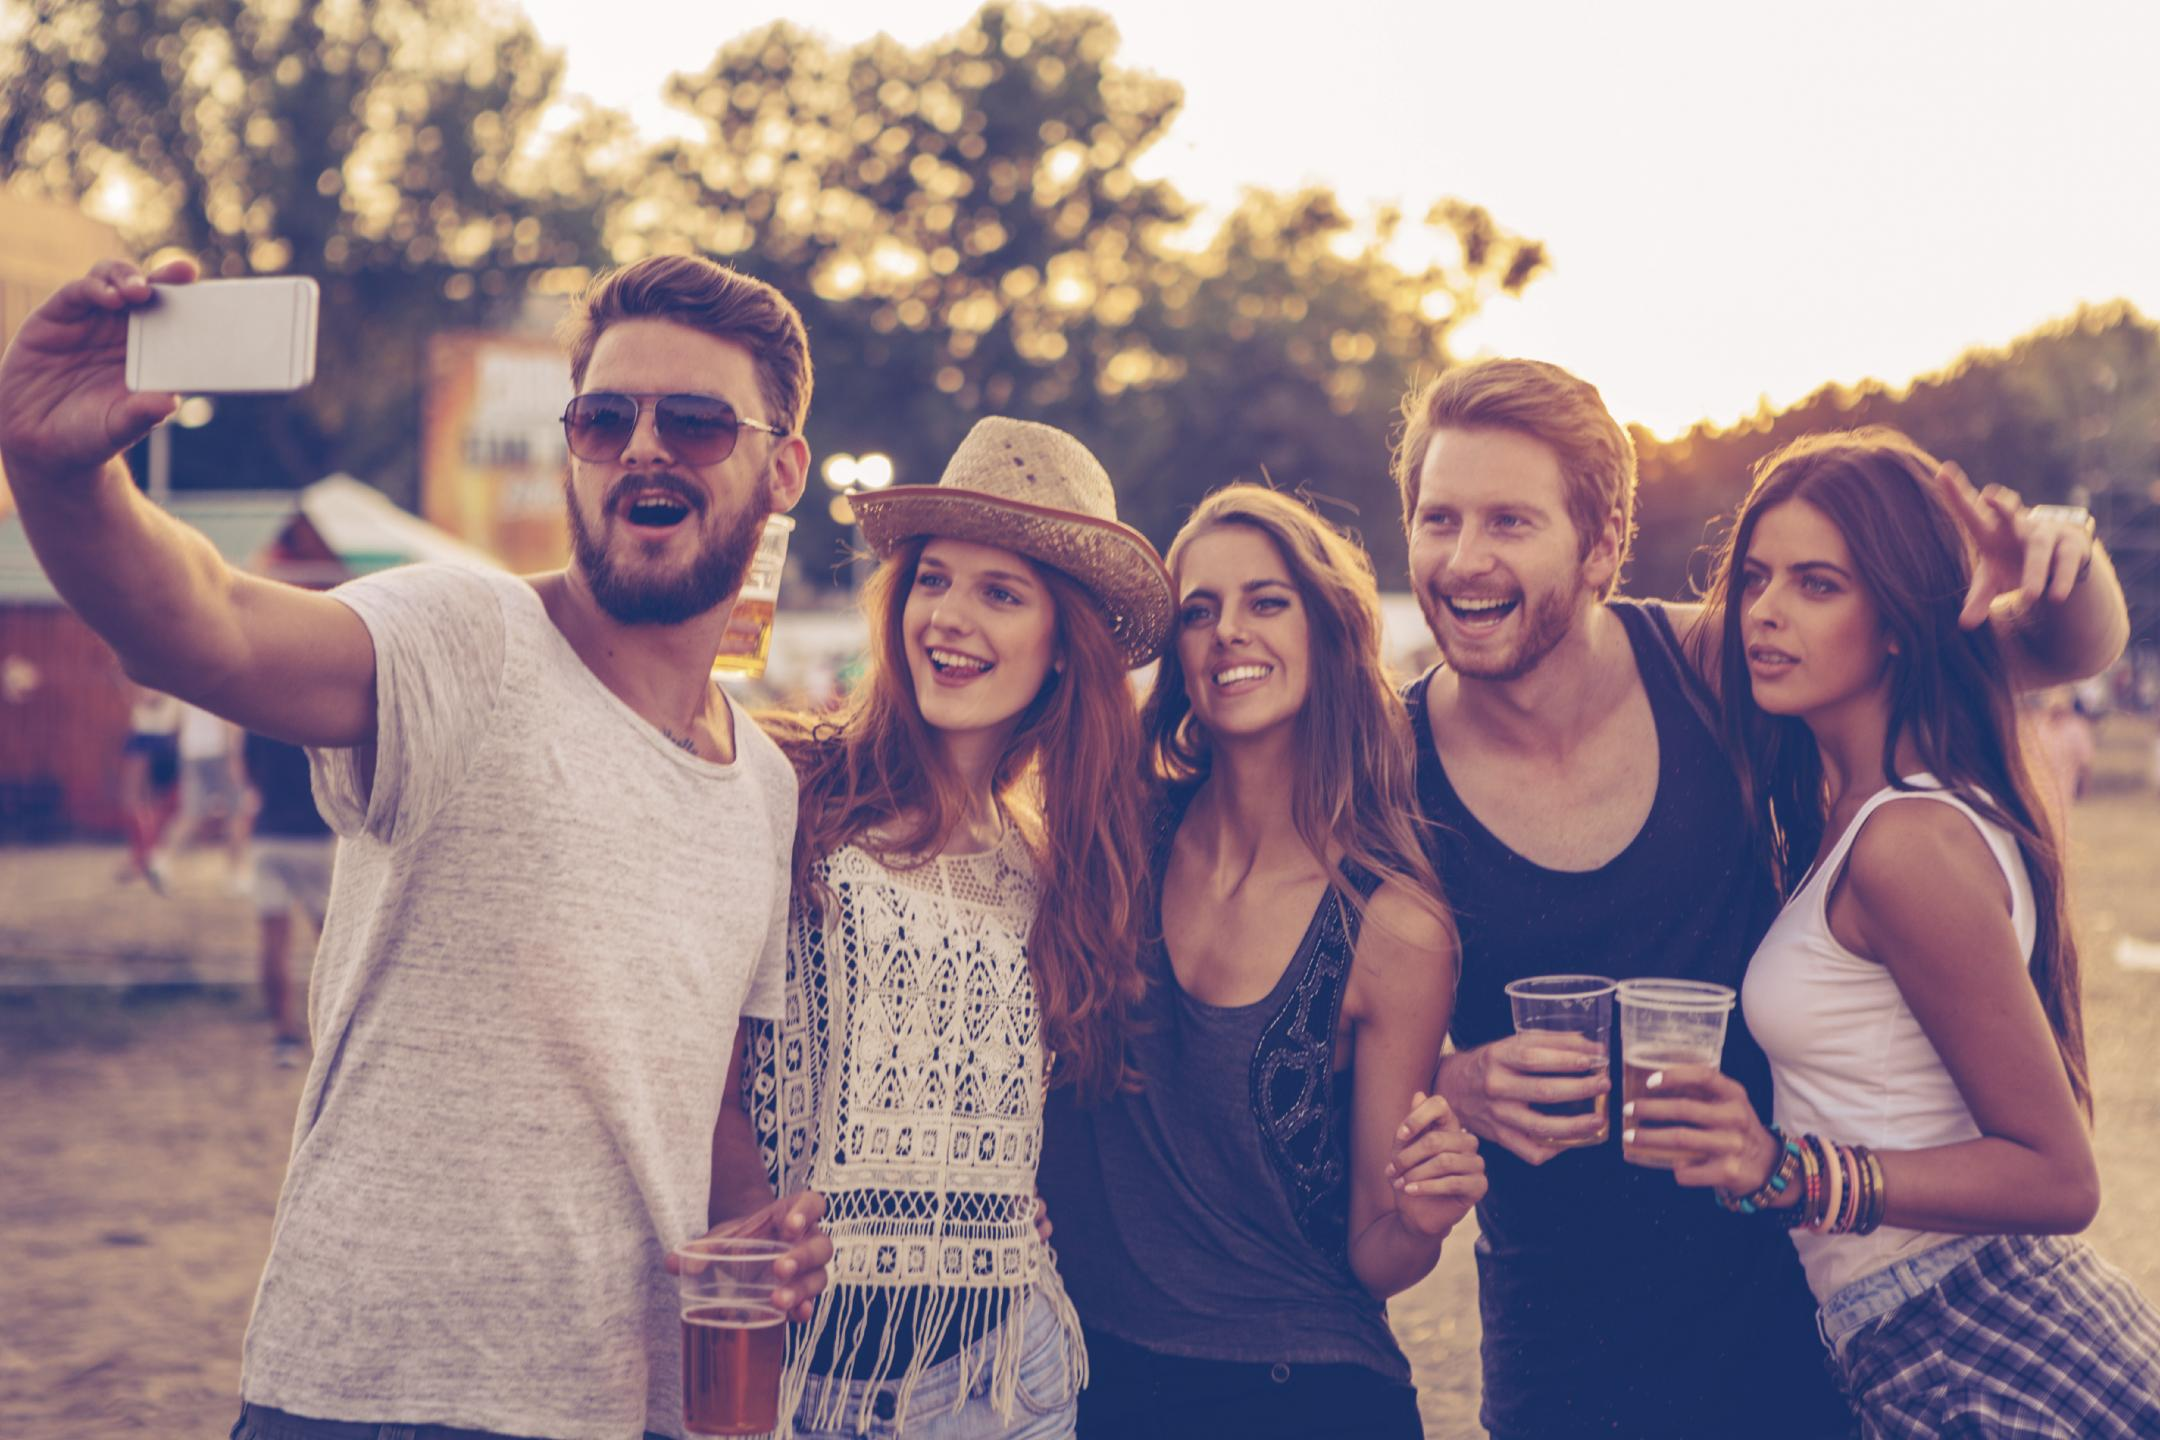 5 Tips & Phone Hacks for Surviving Music Festivals